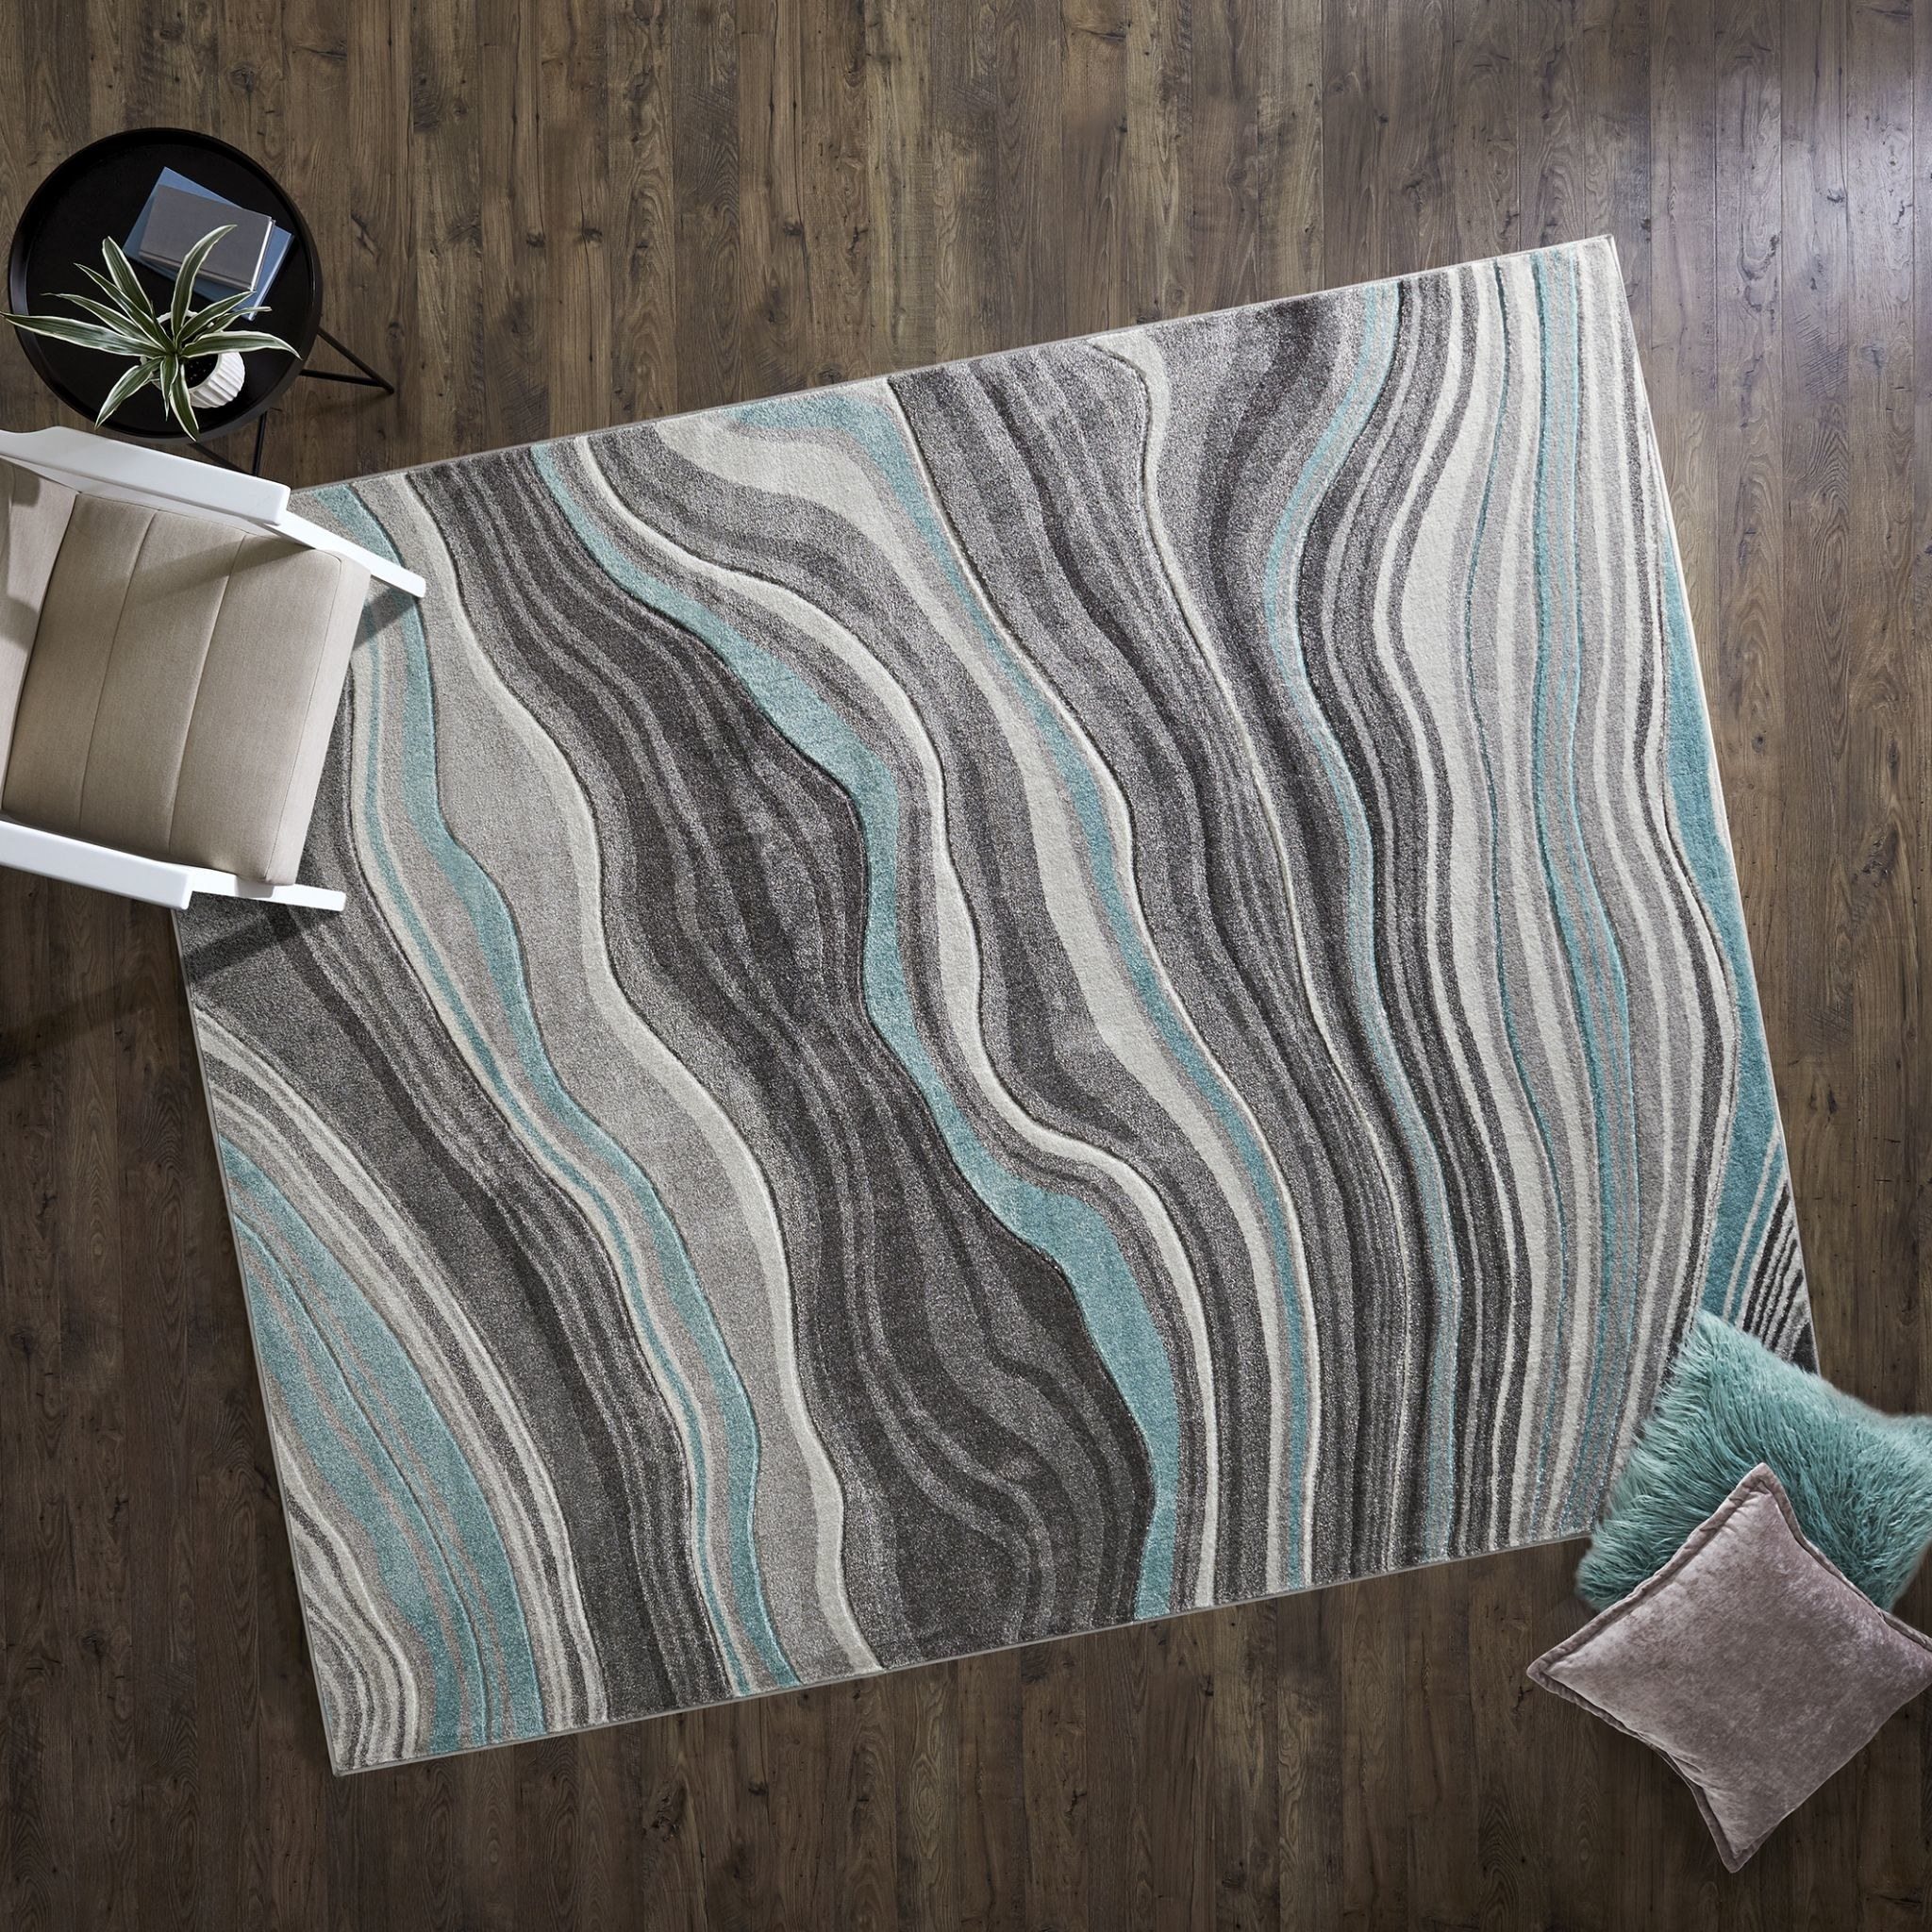 a rug with blue and grey swirls